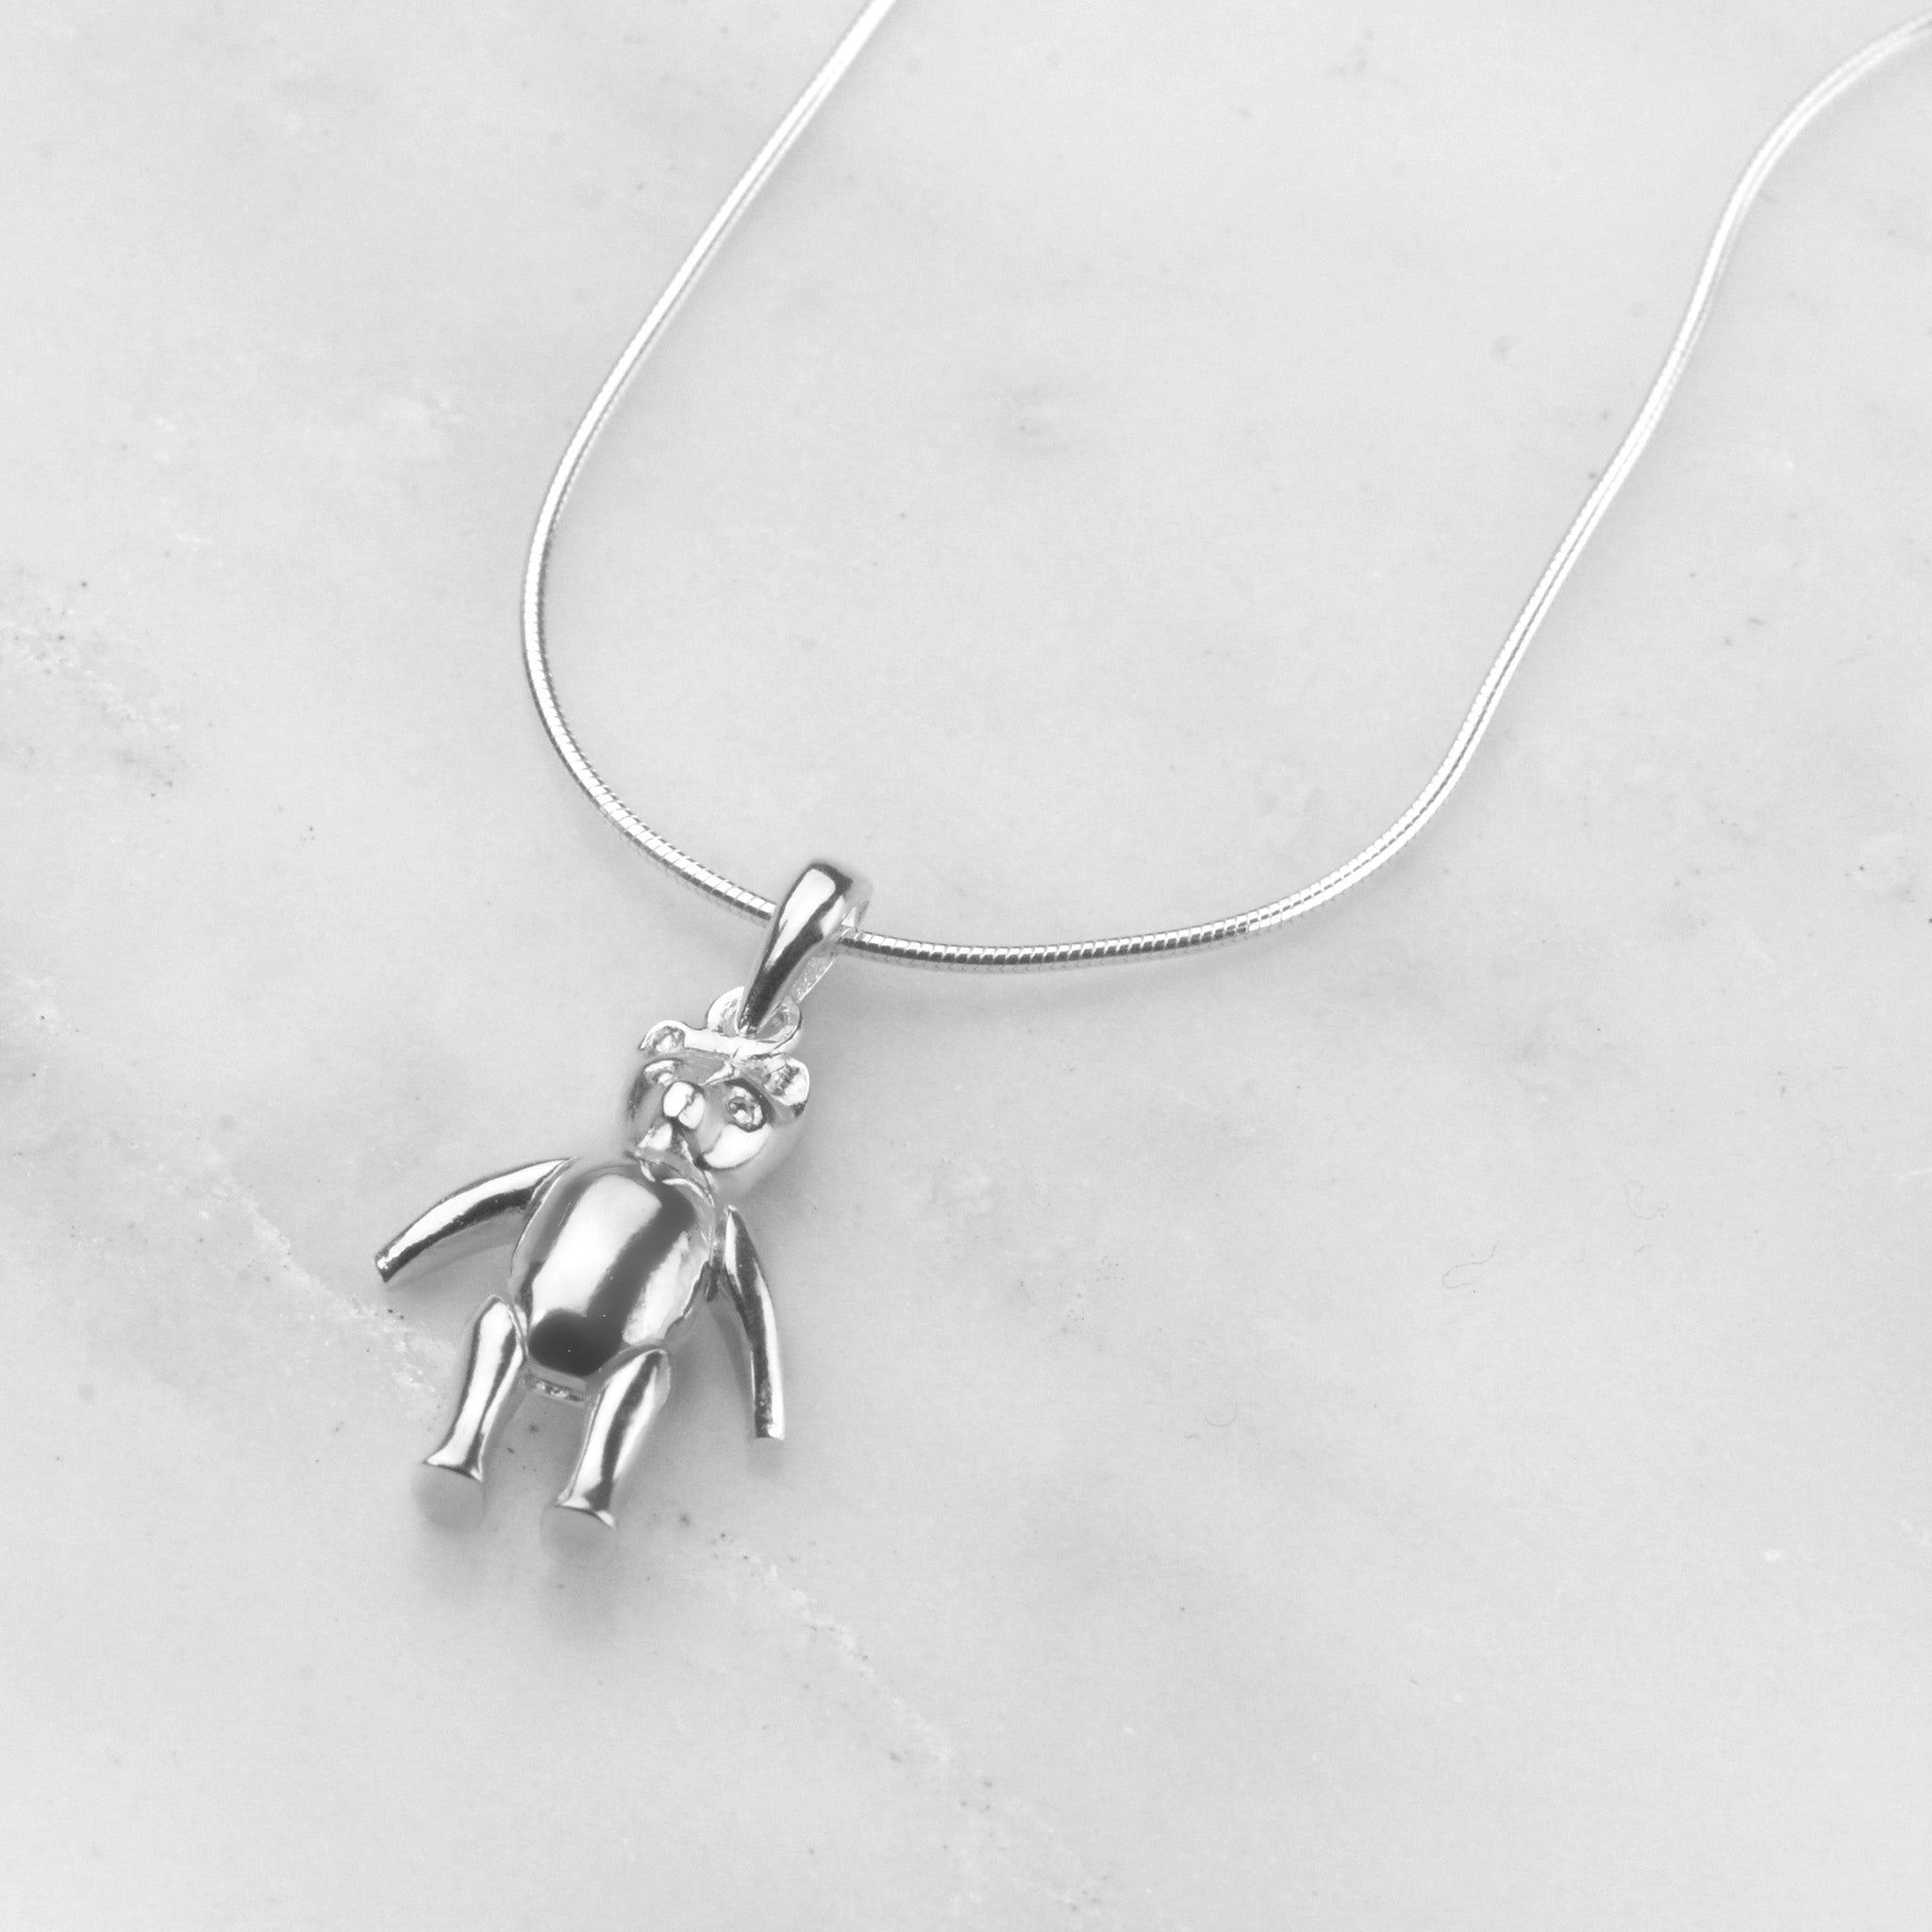 Articulated Teddy Necklace we love mummy